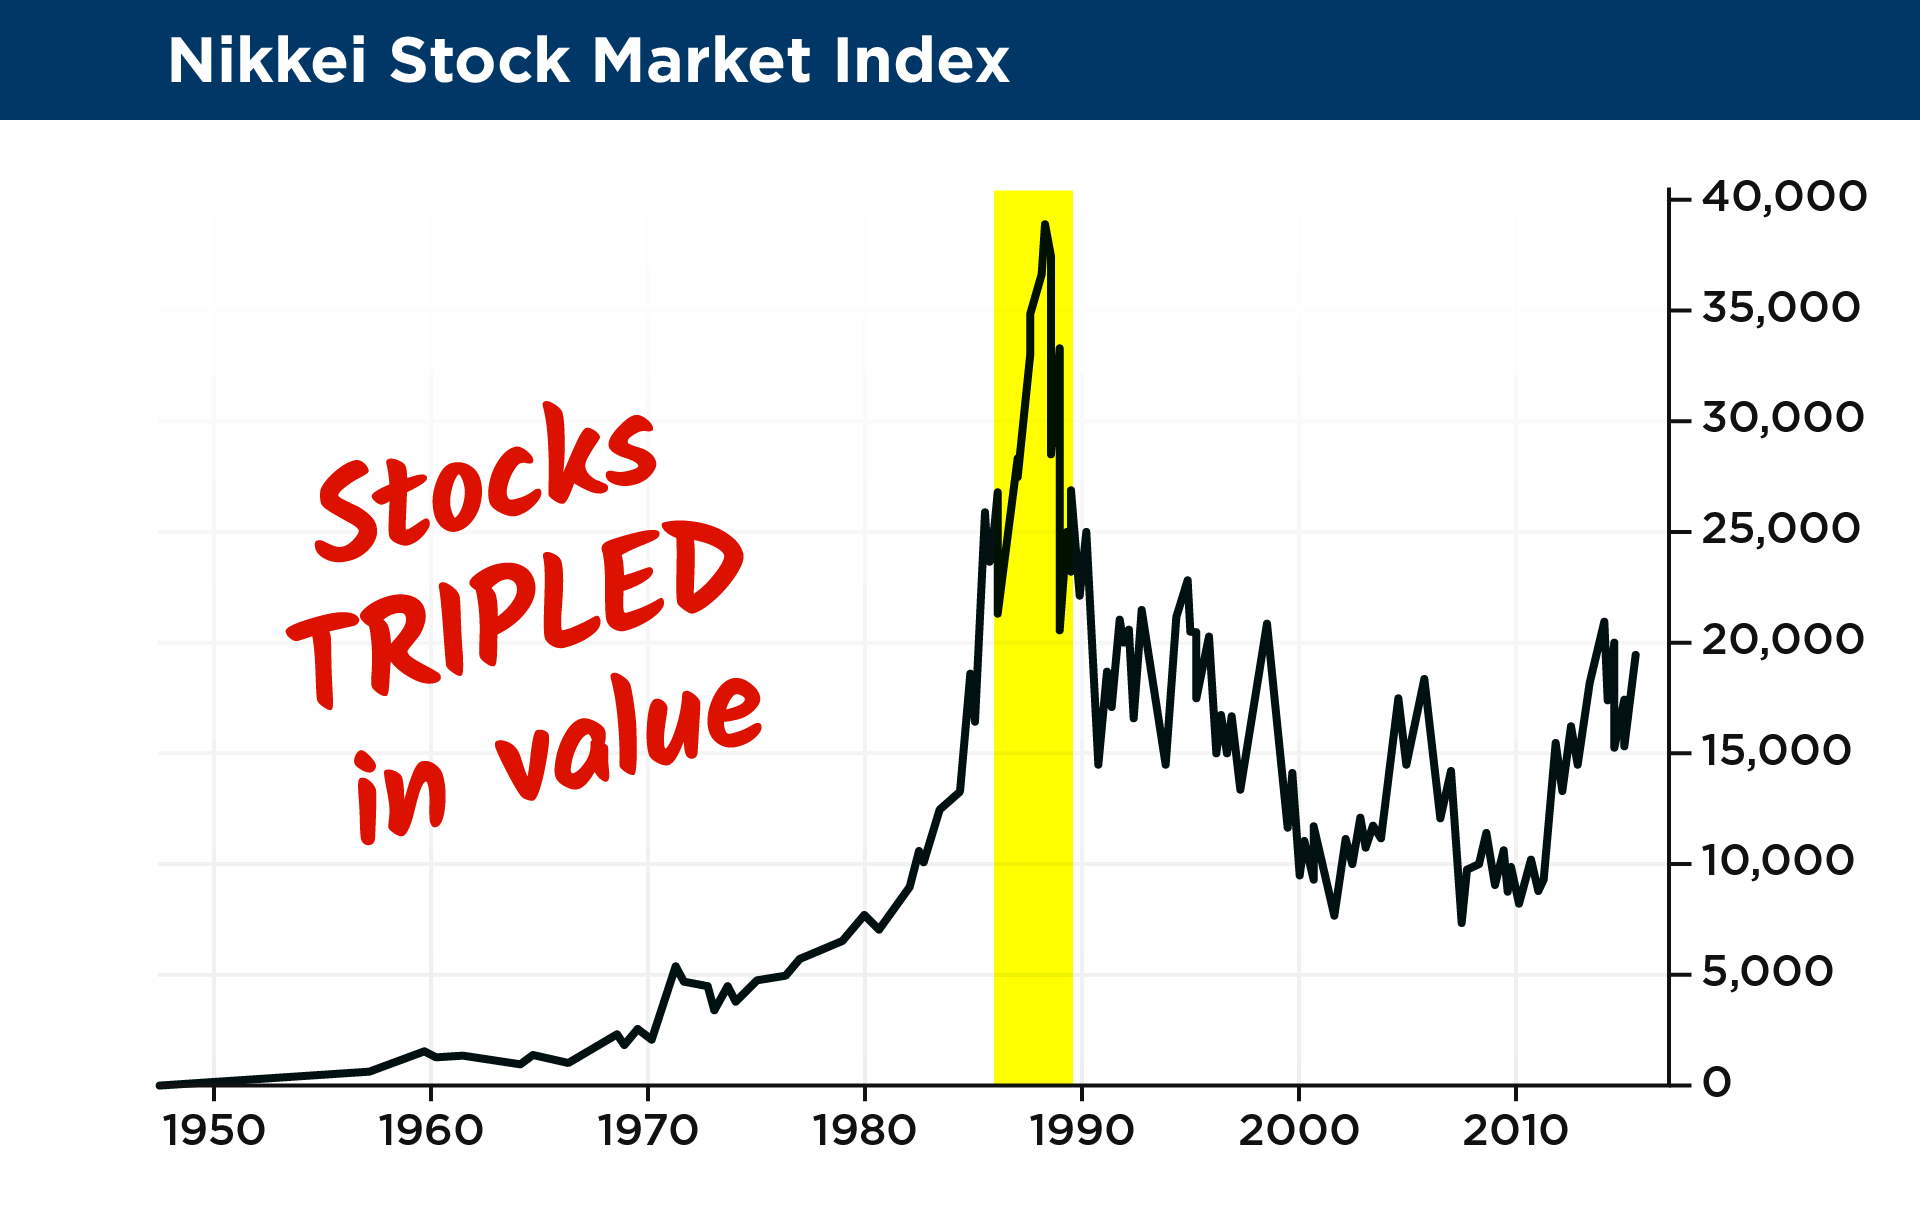 14a nikkei stock market index 22xg and again during the dotcom boom of the 1990s biocorpaavc Images